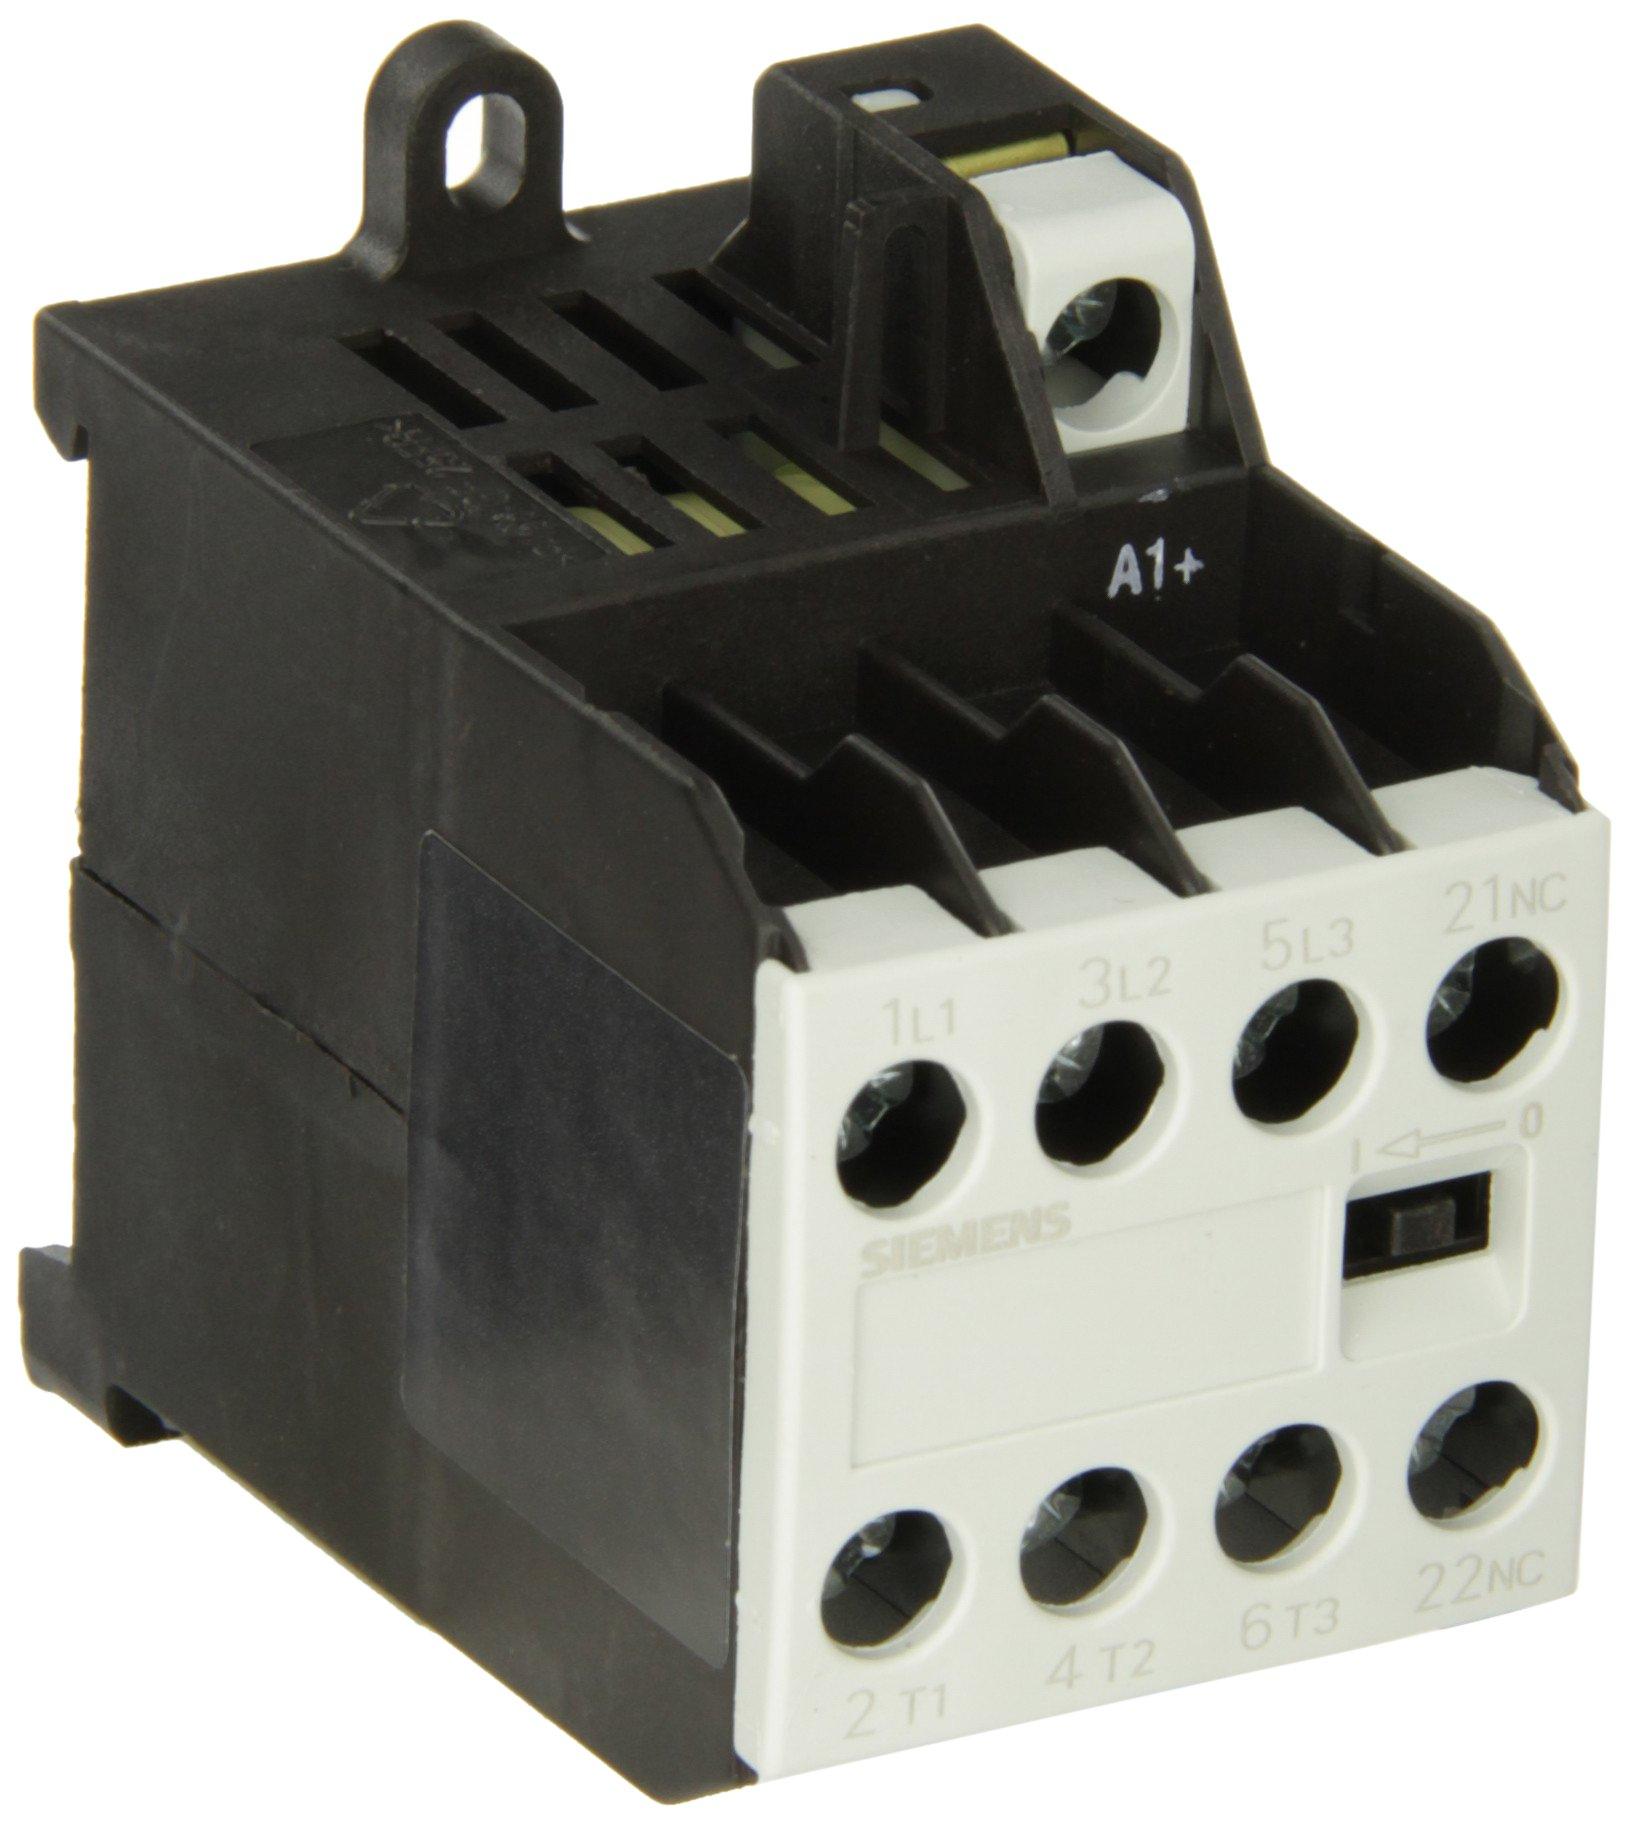 Siemens 3TG10 01-0BB4 Coupling Power Relay, Screw Connections, 4 Pin, Hum Free, 35mm Standard Mounting Rail Size, 3 NO + 1 NC Contacts, 20VDC Max Resistive Load, 5Hp Rating of Three Phase Load at 50Hz, 8.4A Max Inductive Current, 24VDC Control Supply Volt